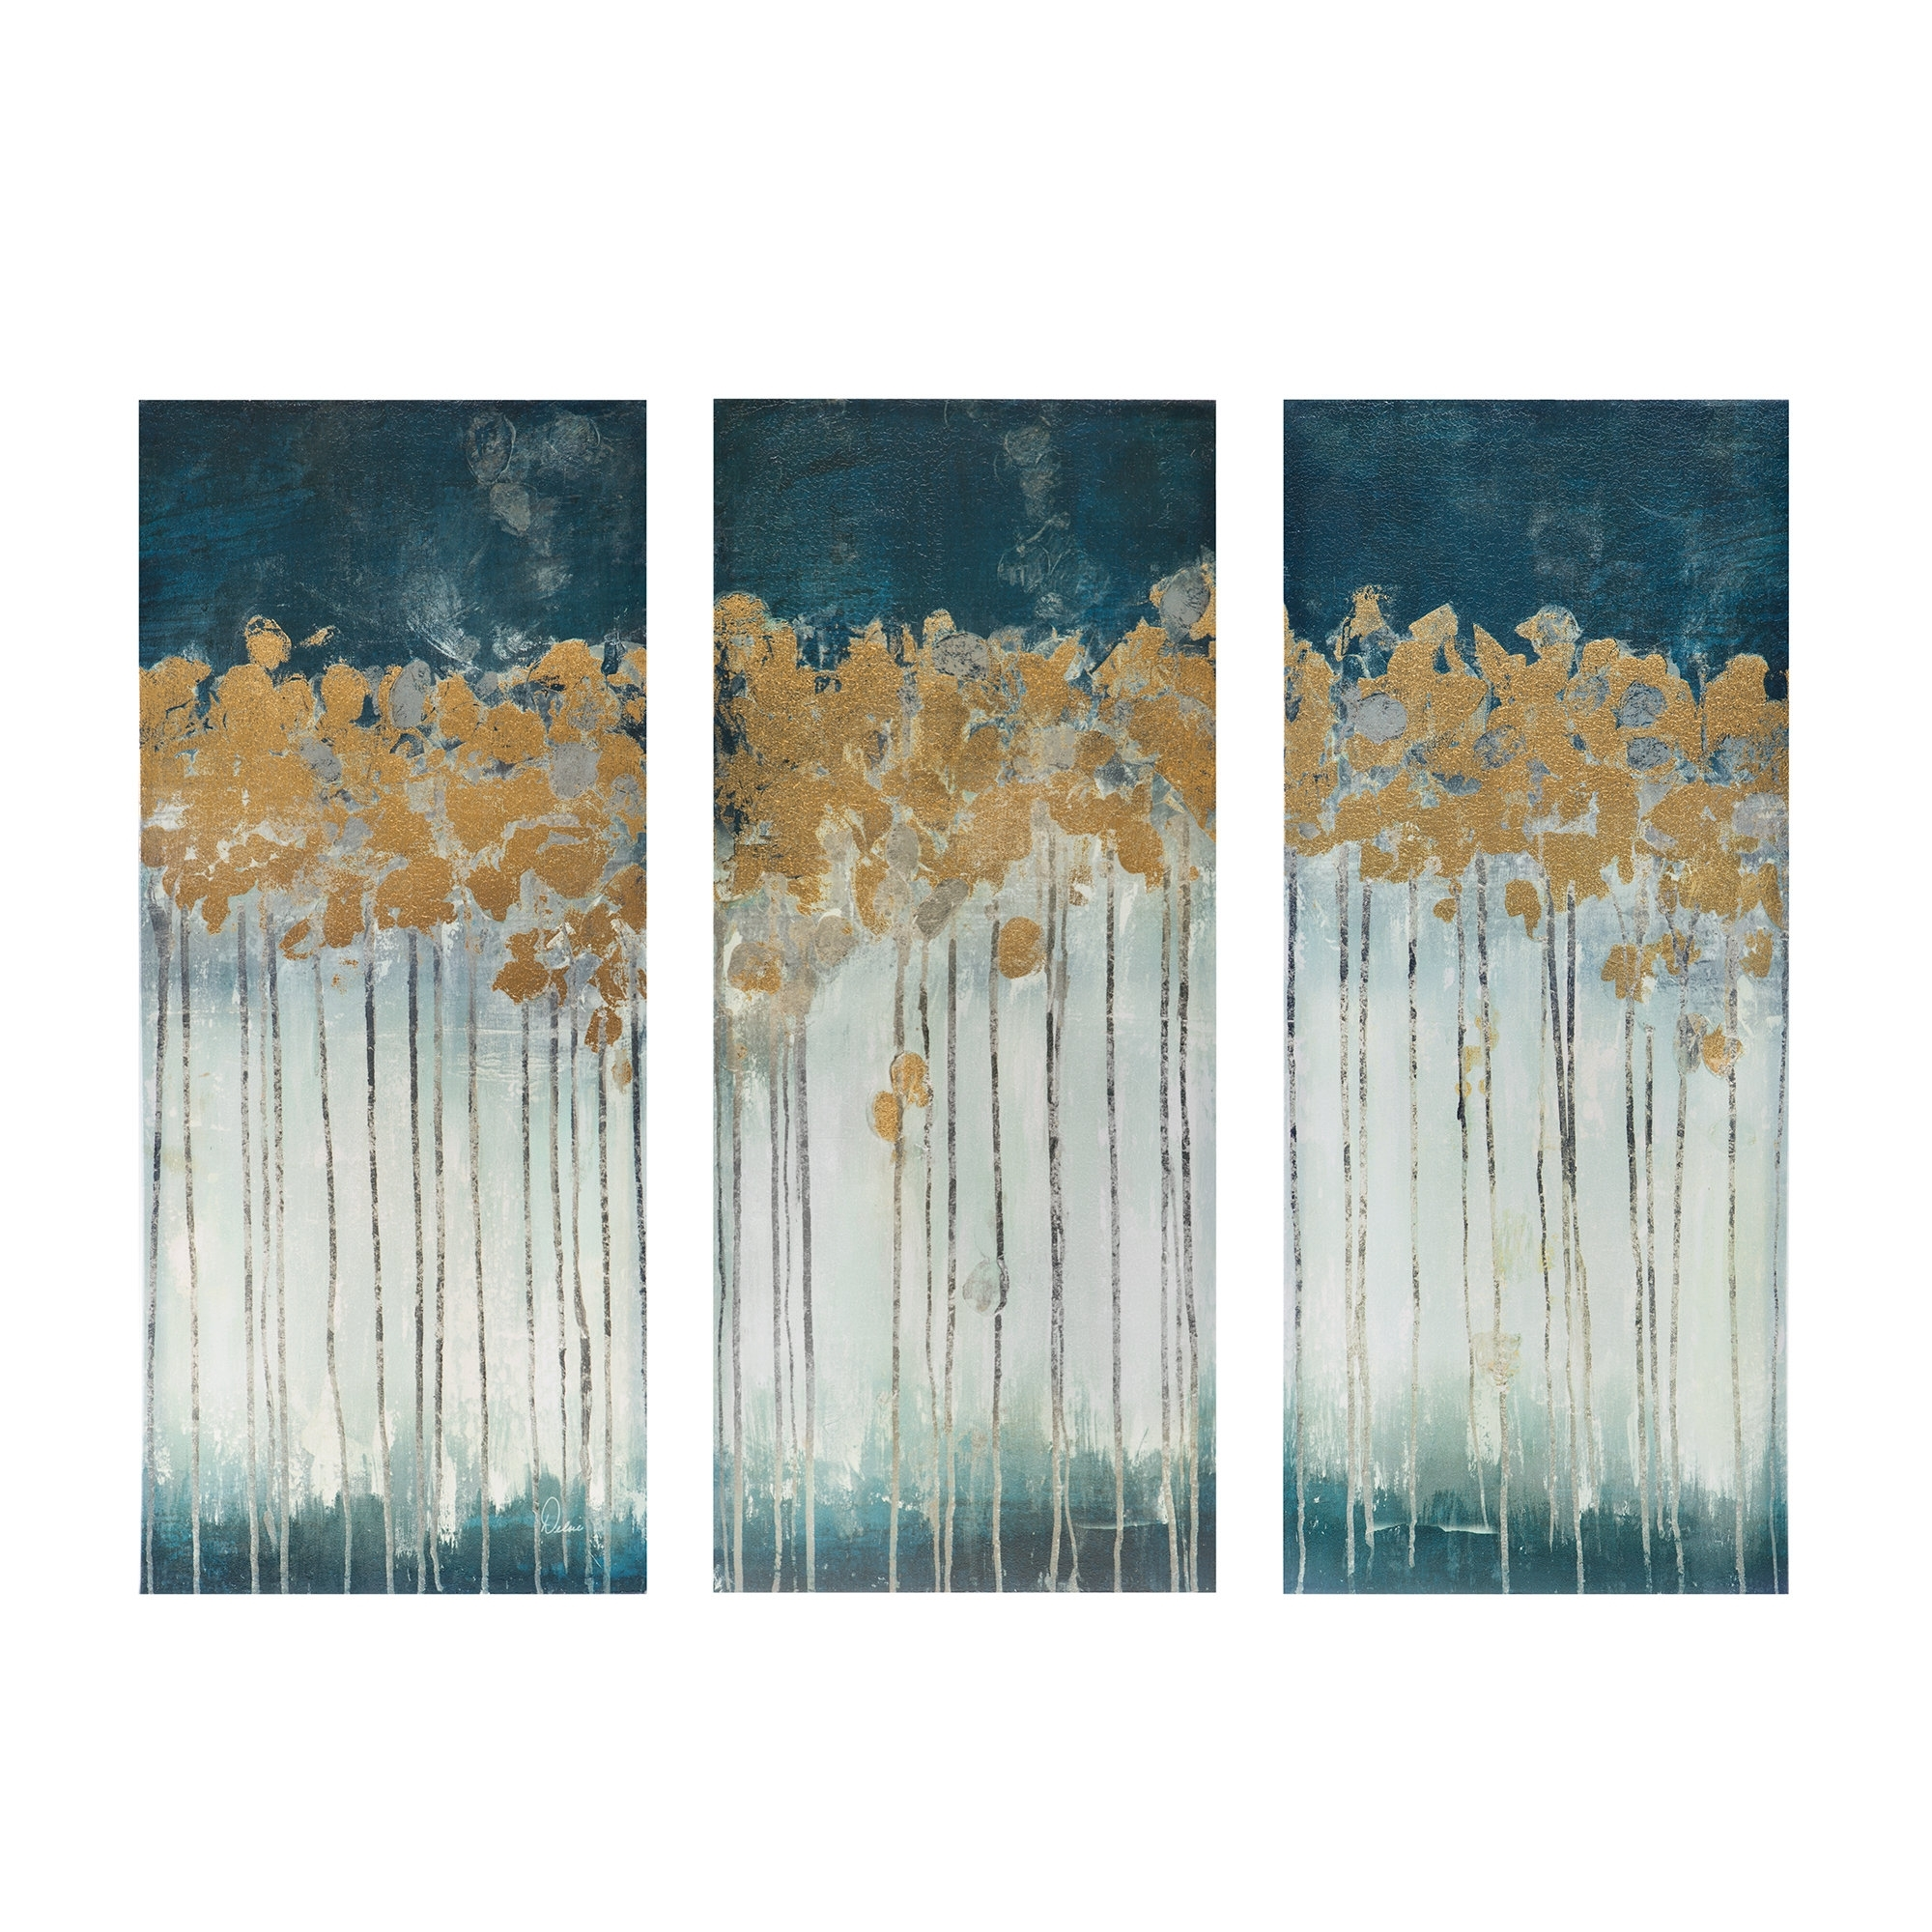 Midnight Forest' Gel Coat Canvas Wall Art With Gold Foil With Newest Gold Canvas Wall Art (View 4 of 15)